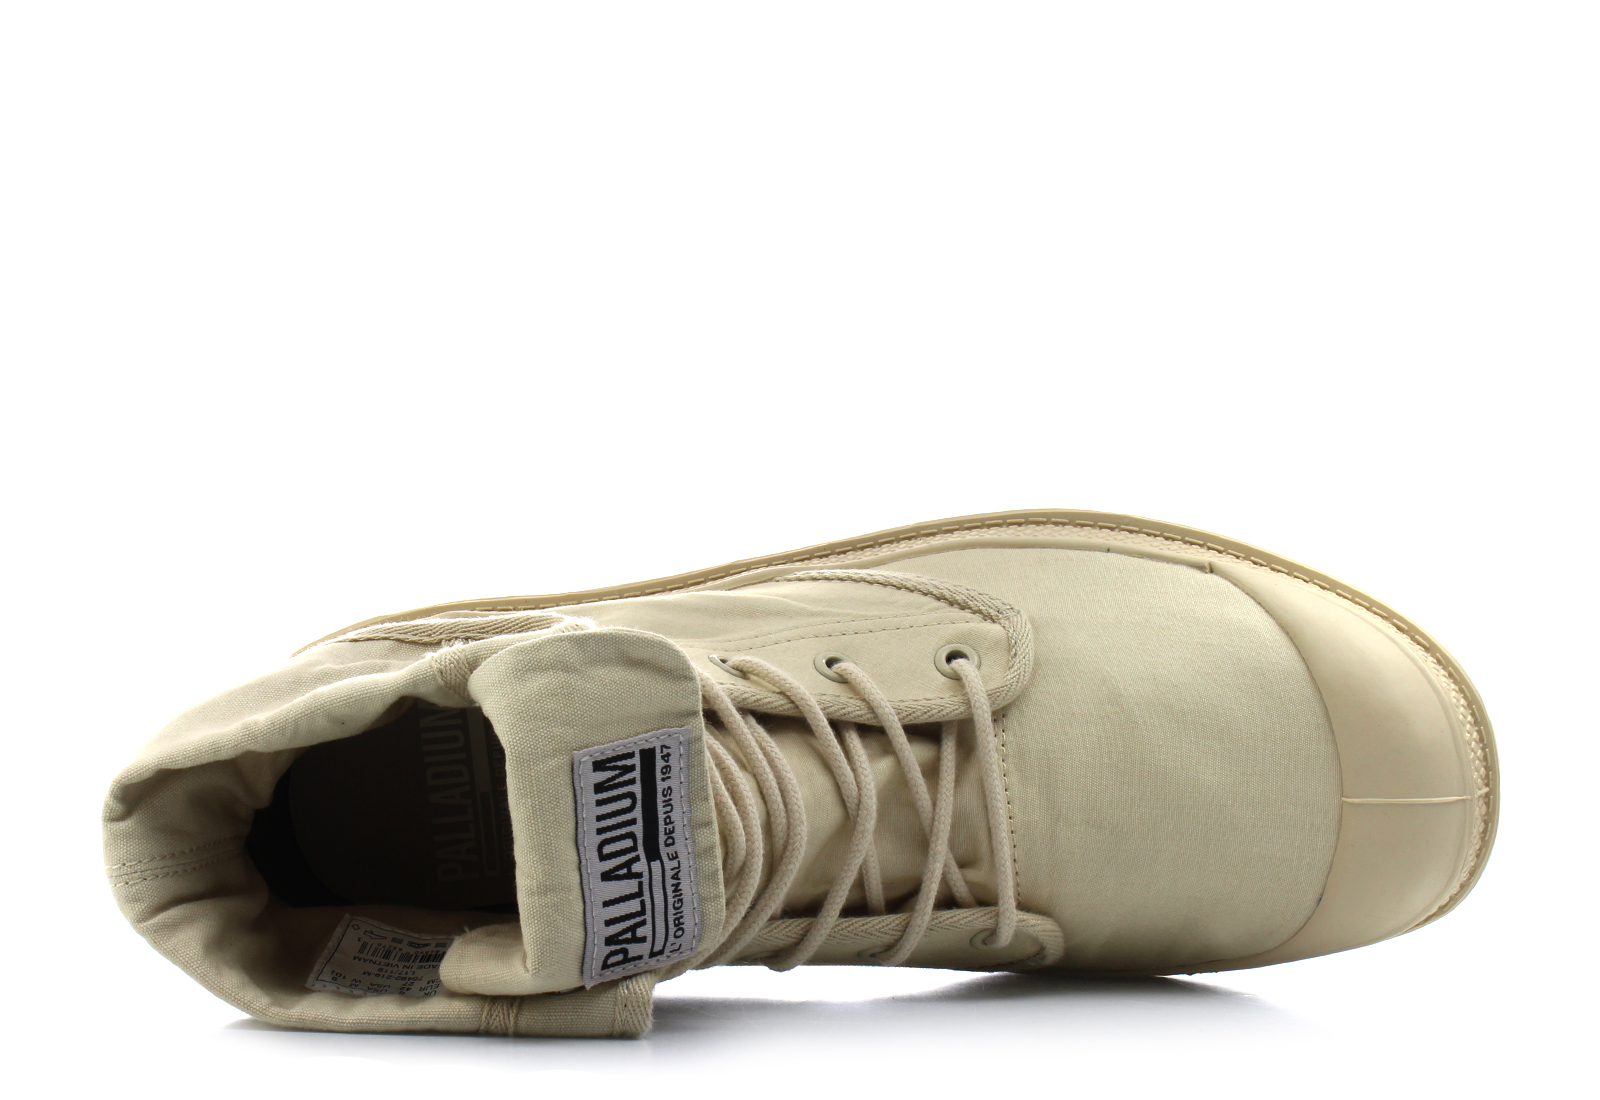 cb5a2623c Palladium Topánky - Baggy Army Trng Camp - 75492-219-M - Tenisky ...